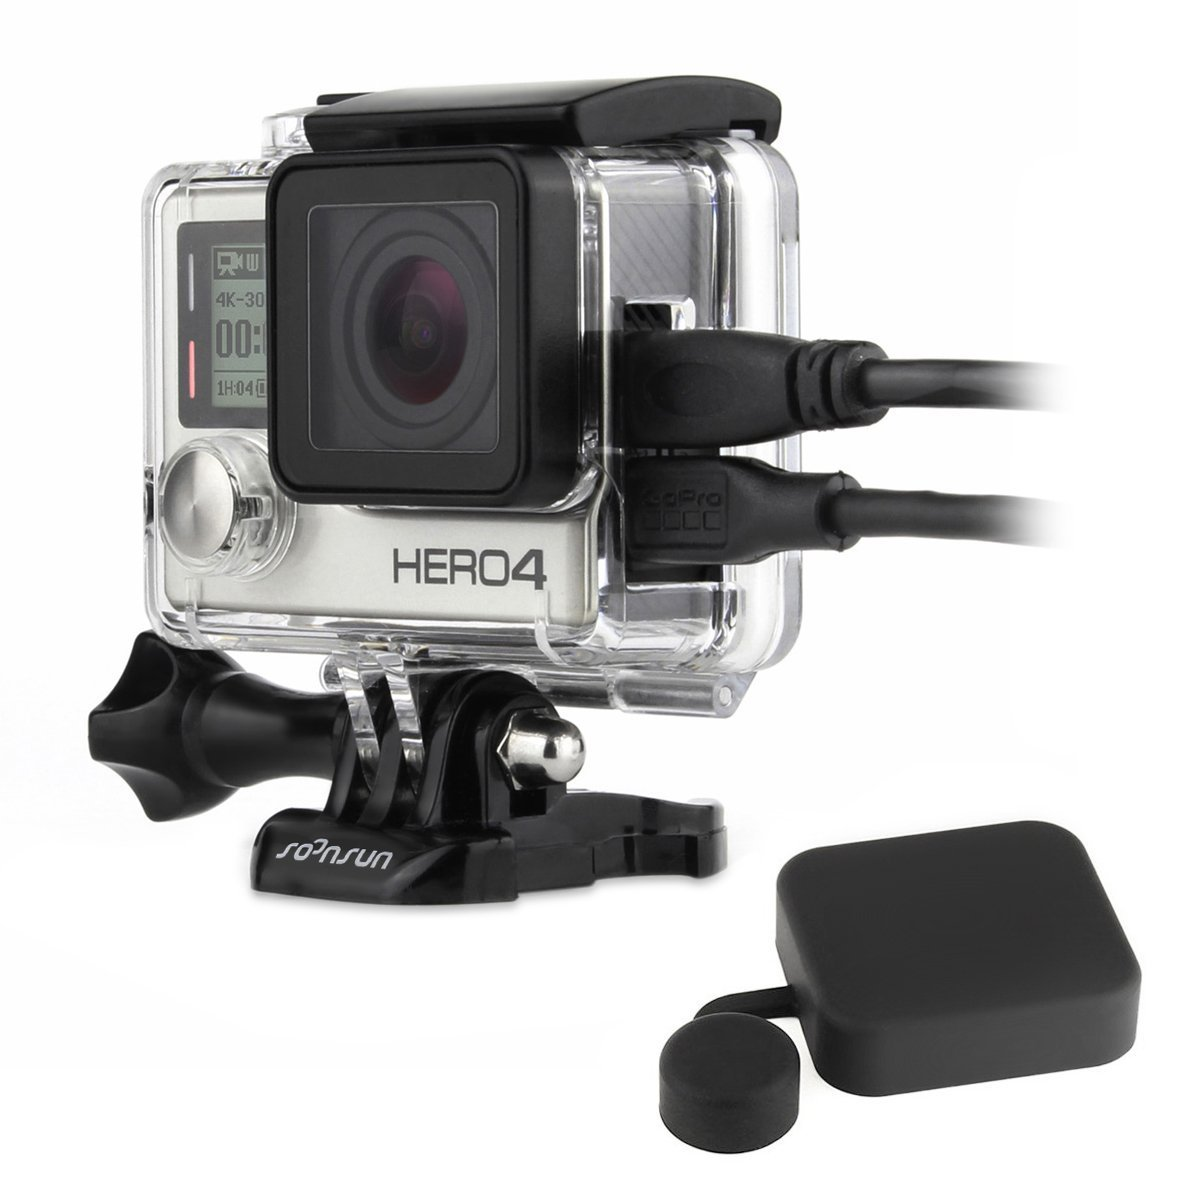 SOONSUN Side Open Protective Skeleton Housing Case with LCD Touch Backdoor for GoPro Hero 4 Silver by SOONSUN